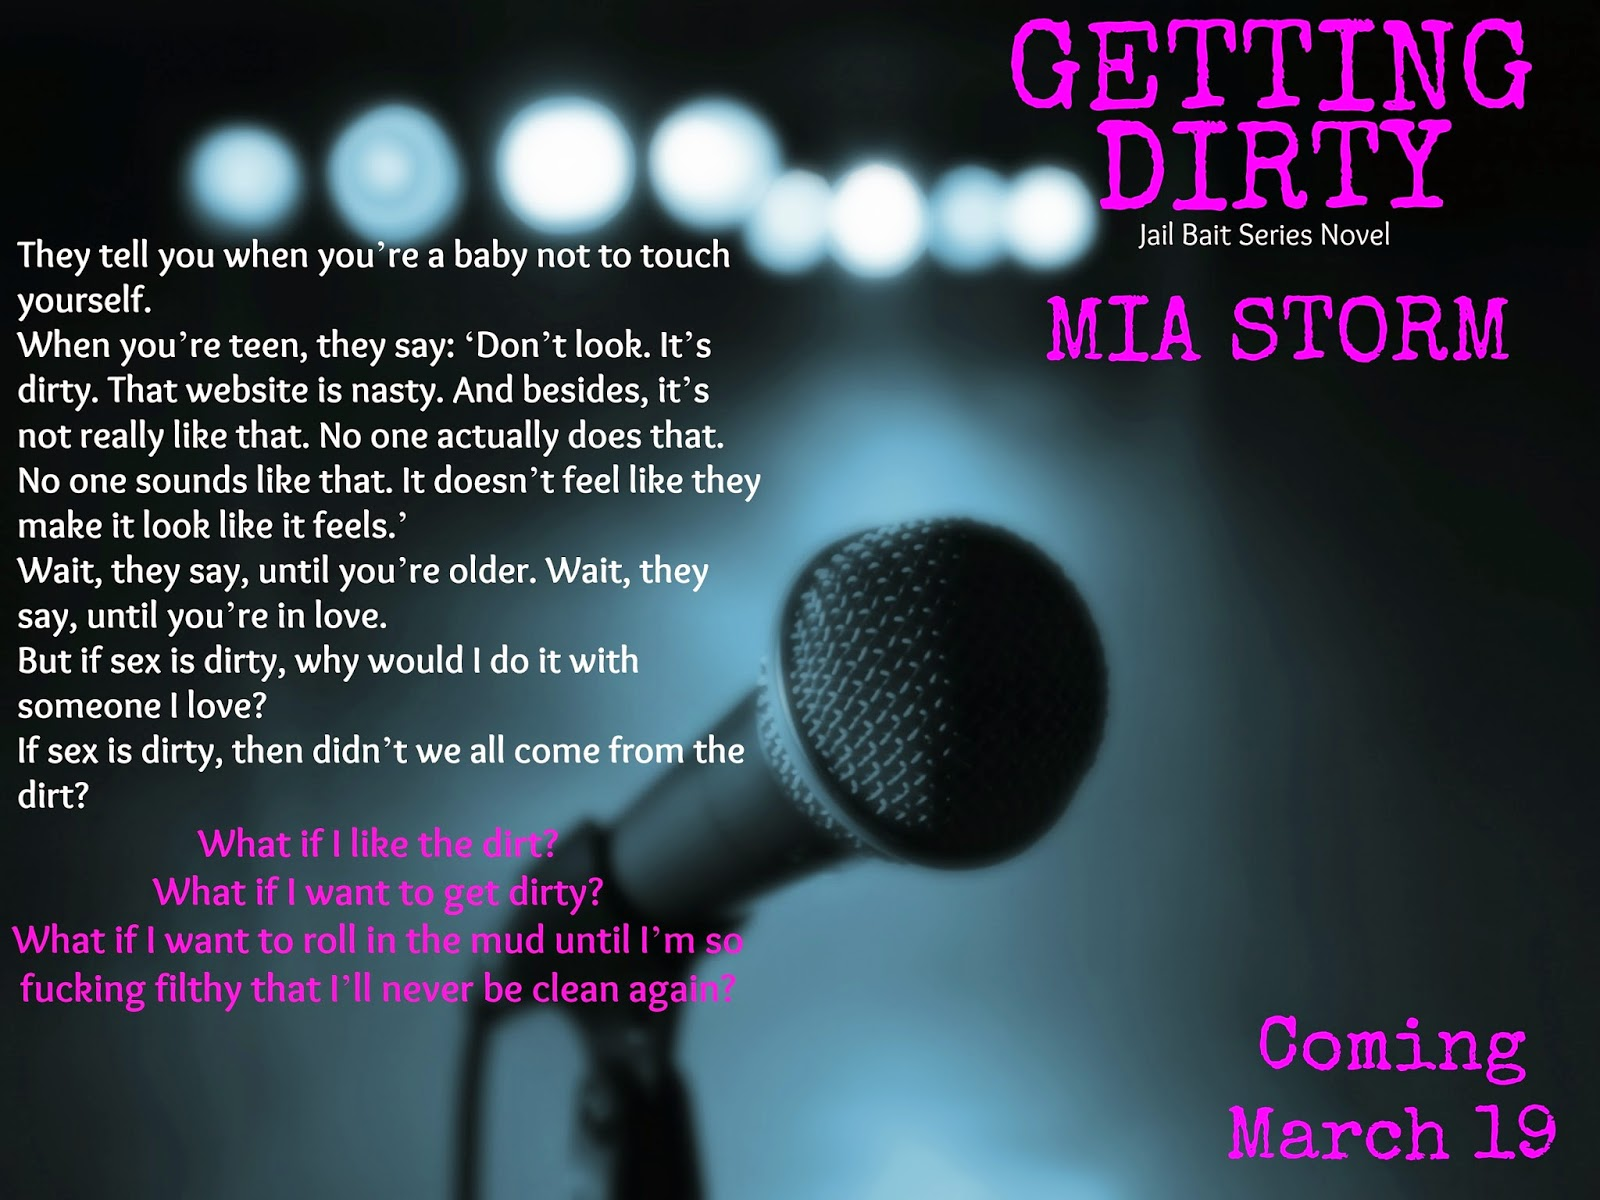 Getting Dirty by Mia Storm #TeaserThursday